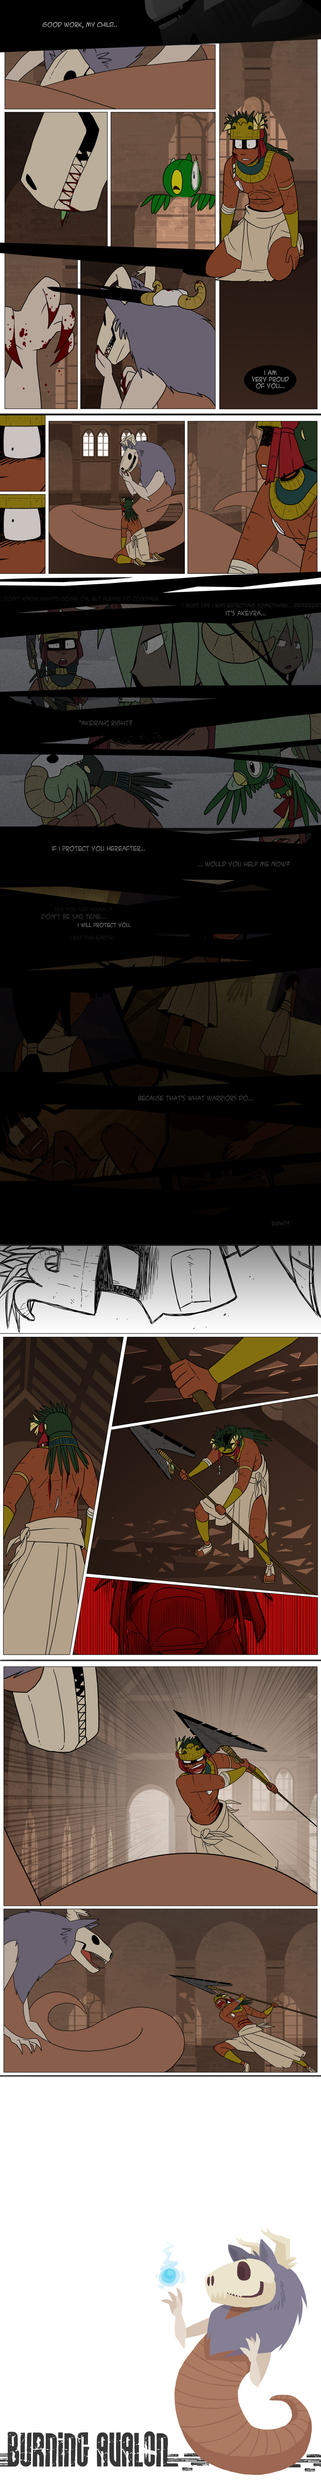 Burning Avalon Round 3: Page 8 by Tickity-Tock